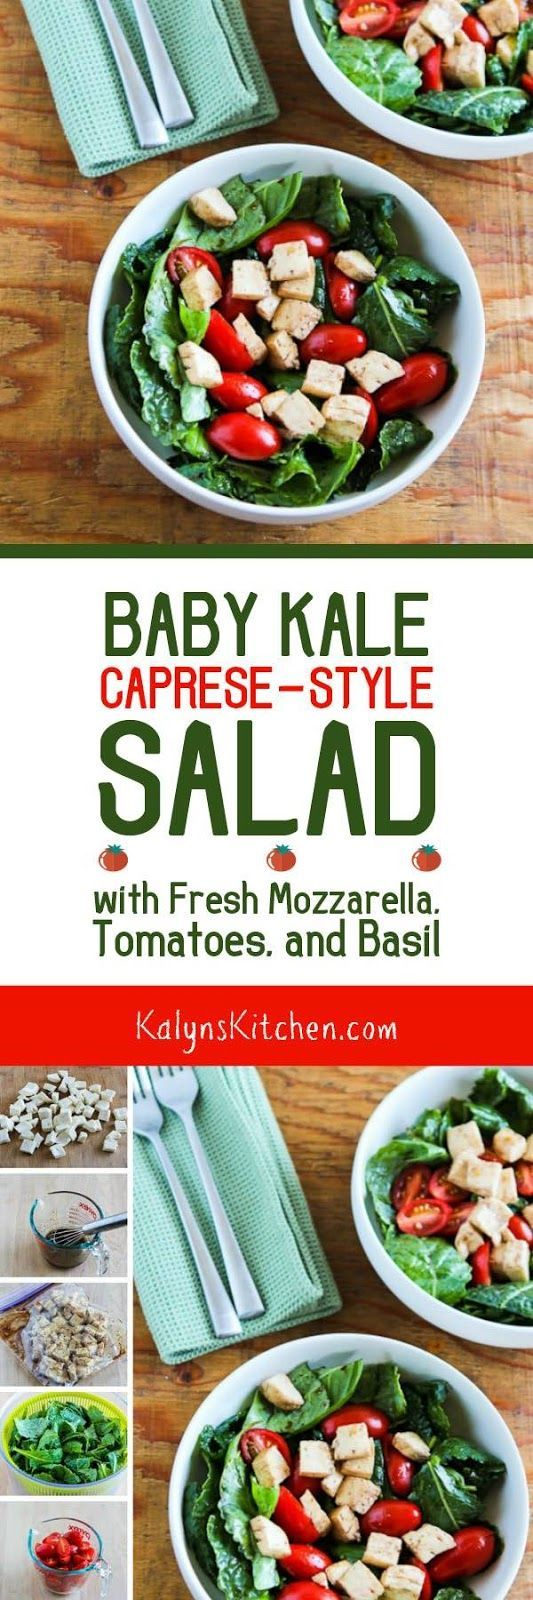 Baby Kale Caprese-Style Salad with Fresh Mozzarella, Tomatoes, and Basil